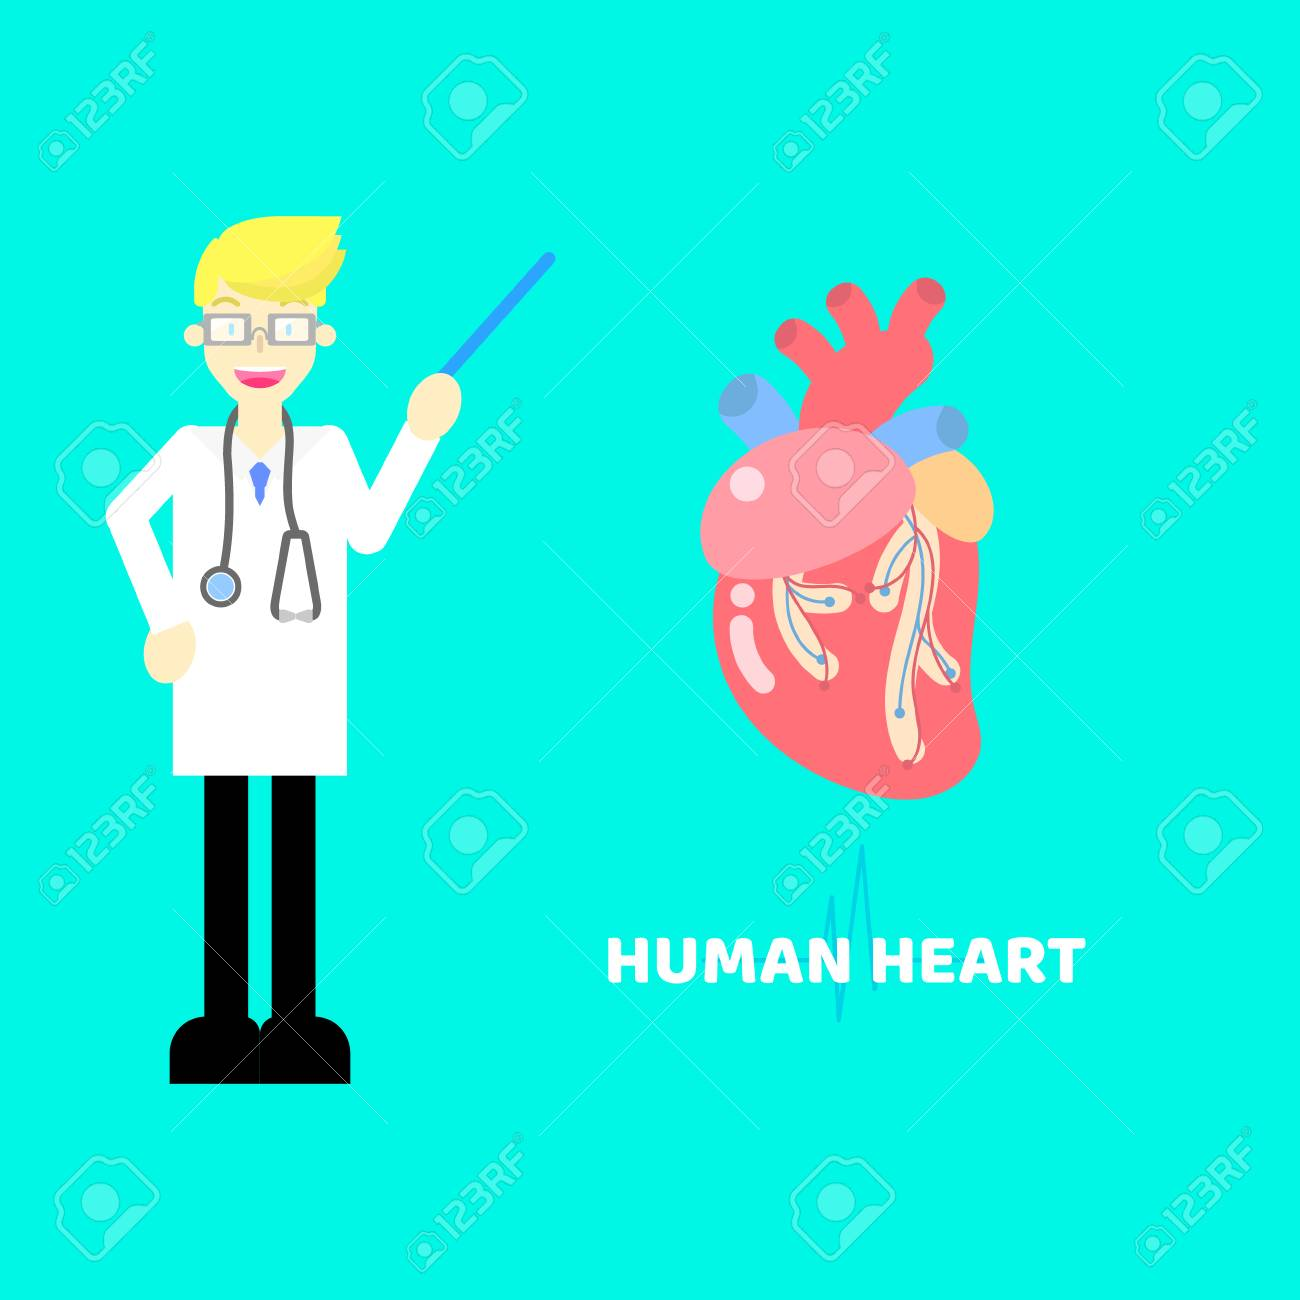 hight resolution of medical internal organs body part nervous system anatomy surgery human heart and stethoscope healthcare label icon